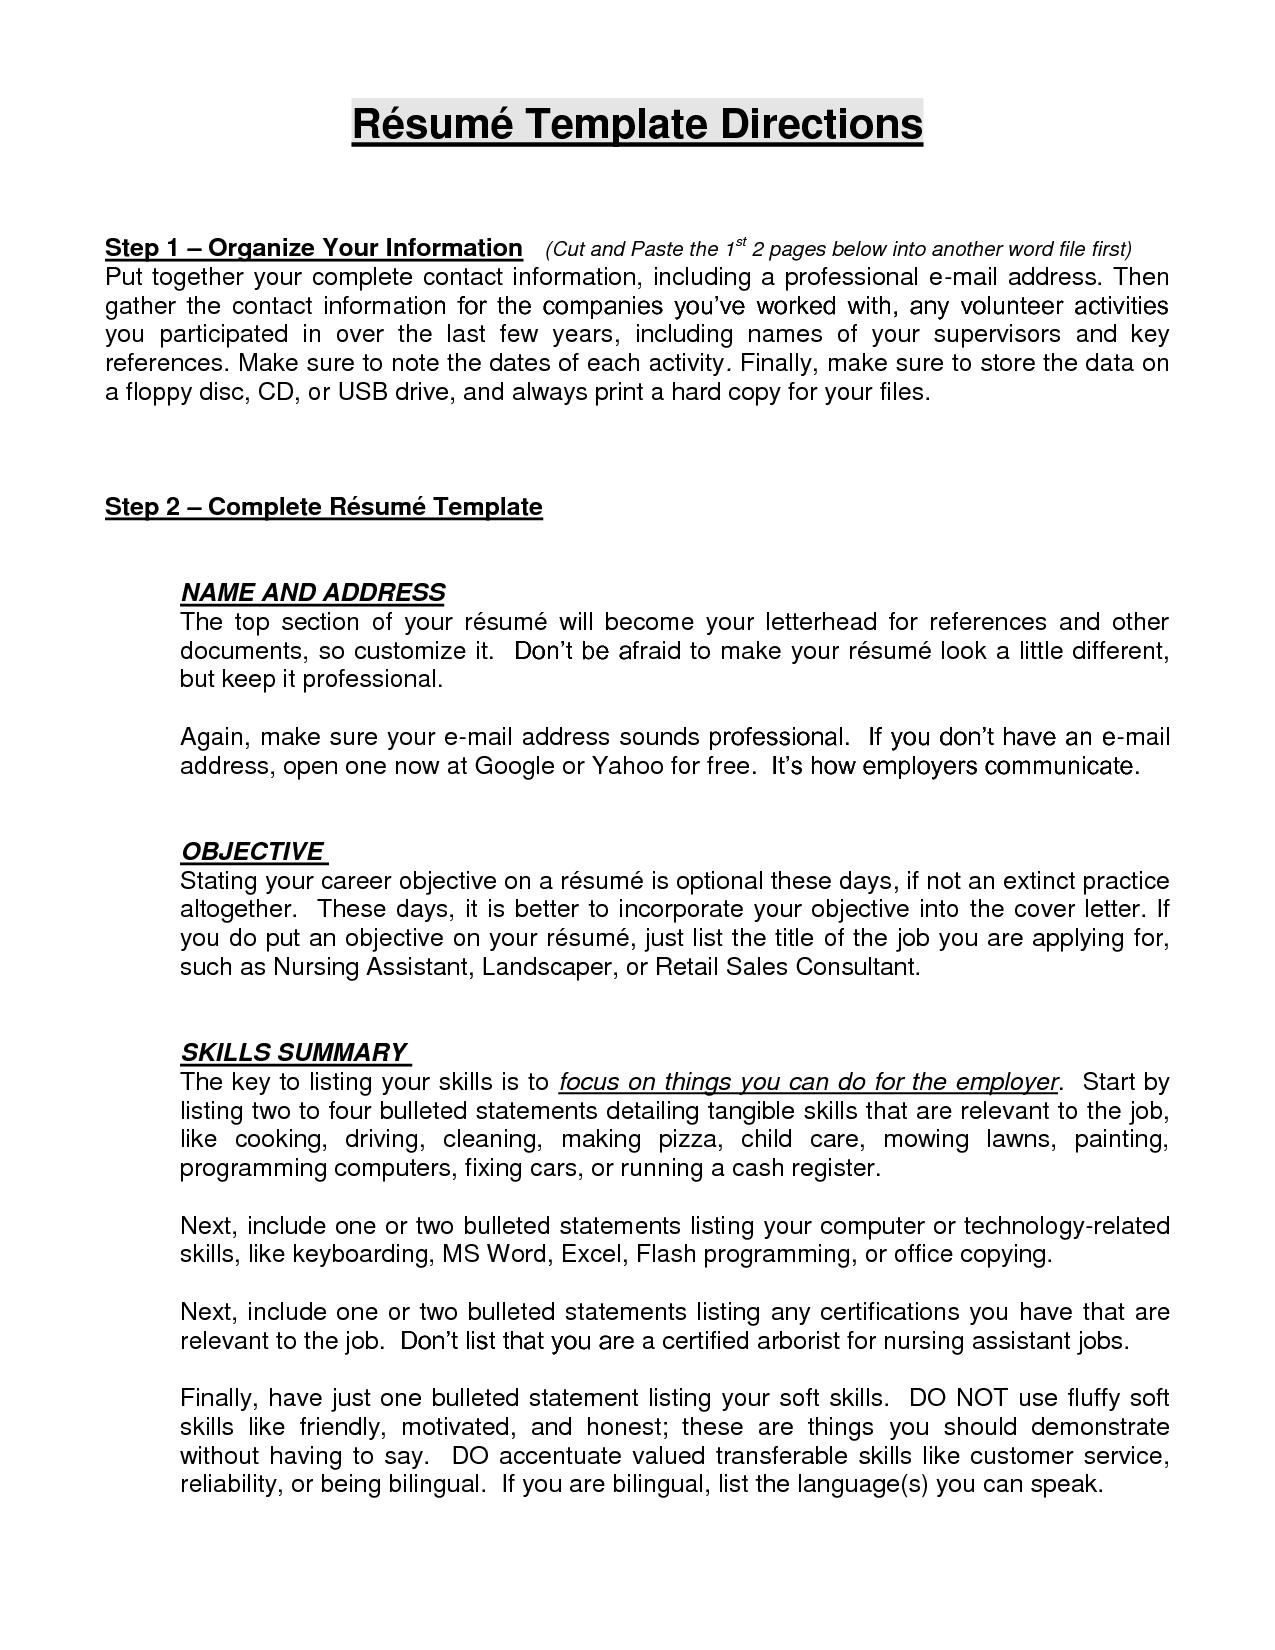 resume objective statements ideas good for career change statement great resumes free Resume Great Objective Statements For Resumes